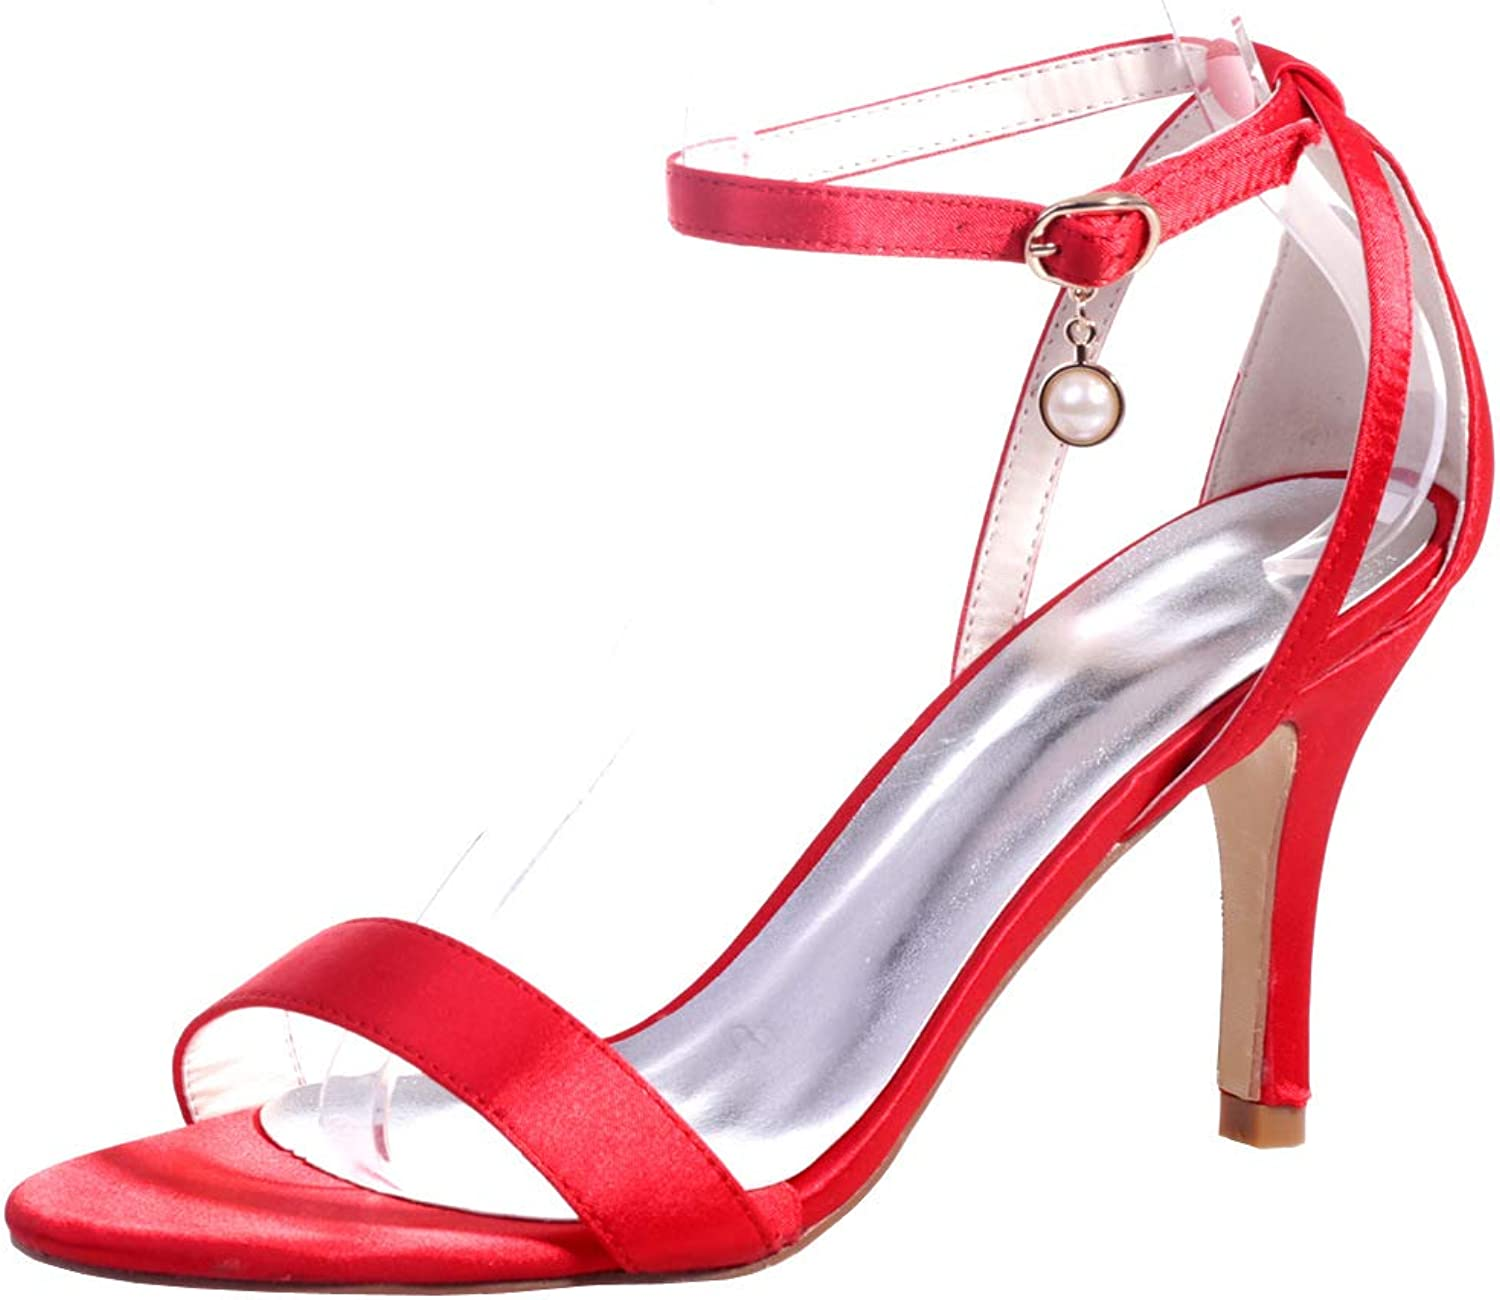 Ladies Sandals,Stiletto Sandals Female Summer New Small Fresh Satin High Heel High Heel Sexy Open Toe with Sandals Female,e,40